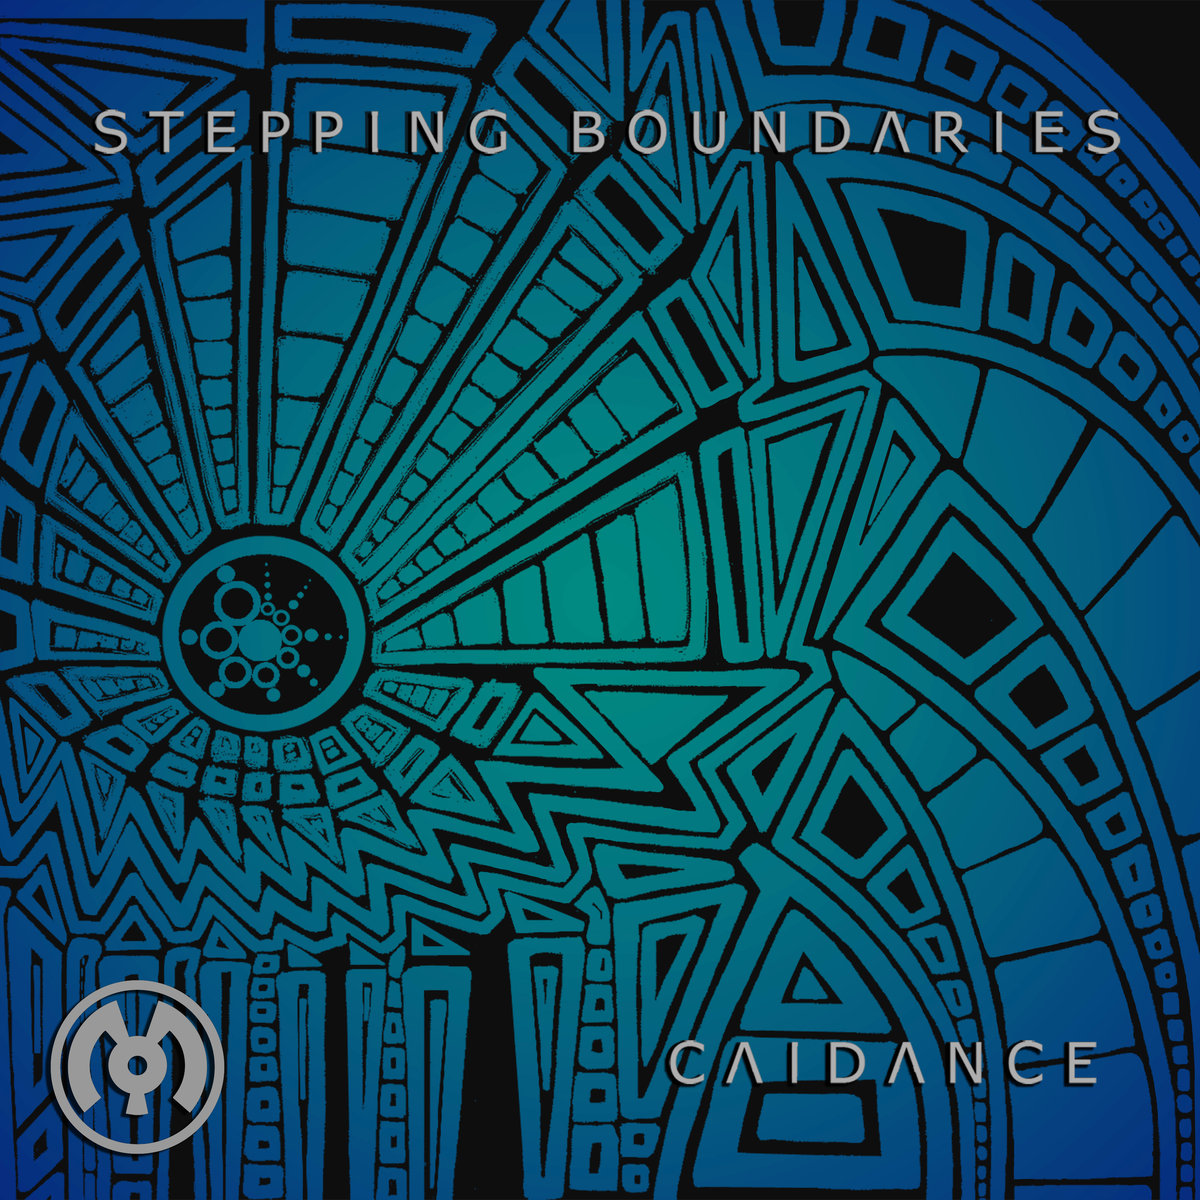 Caidance - Abalone Shell @ 'Stepping Boundaries' album (electronic, dubstep)